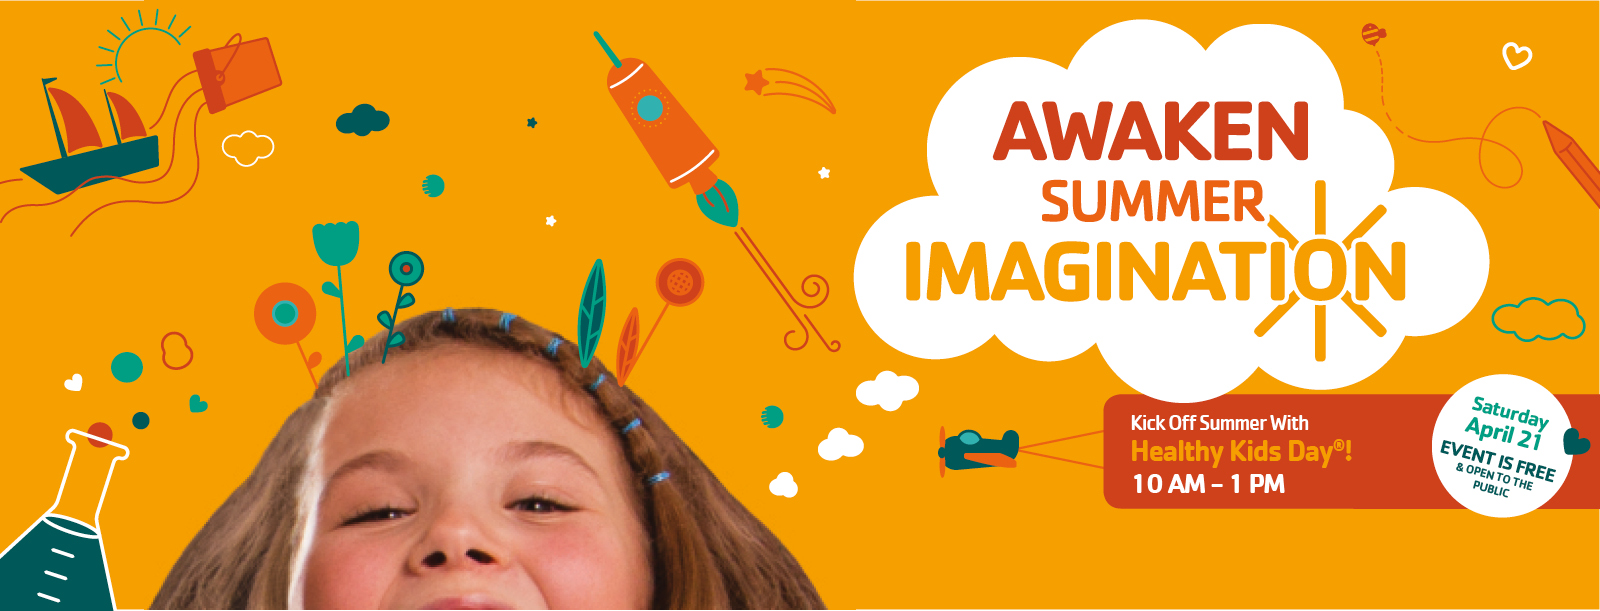 The Phil Cline YMCA Wants to Awaken Summer Imagination at Annual Healthy Kids Day®